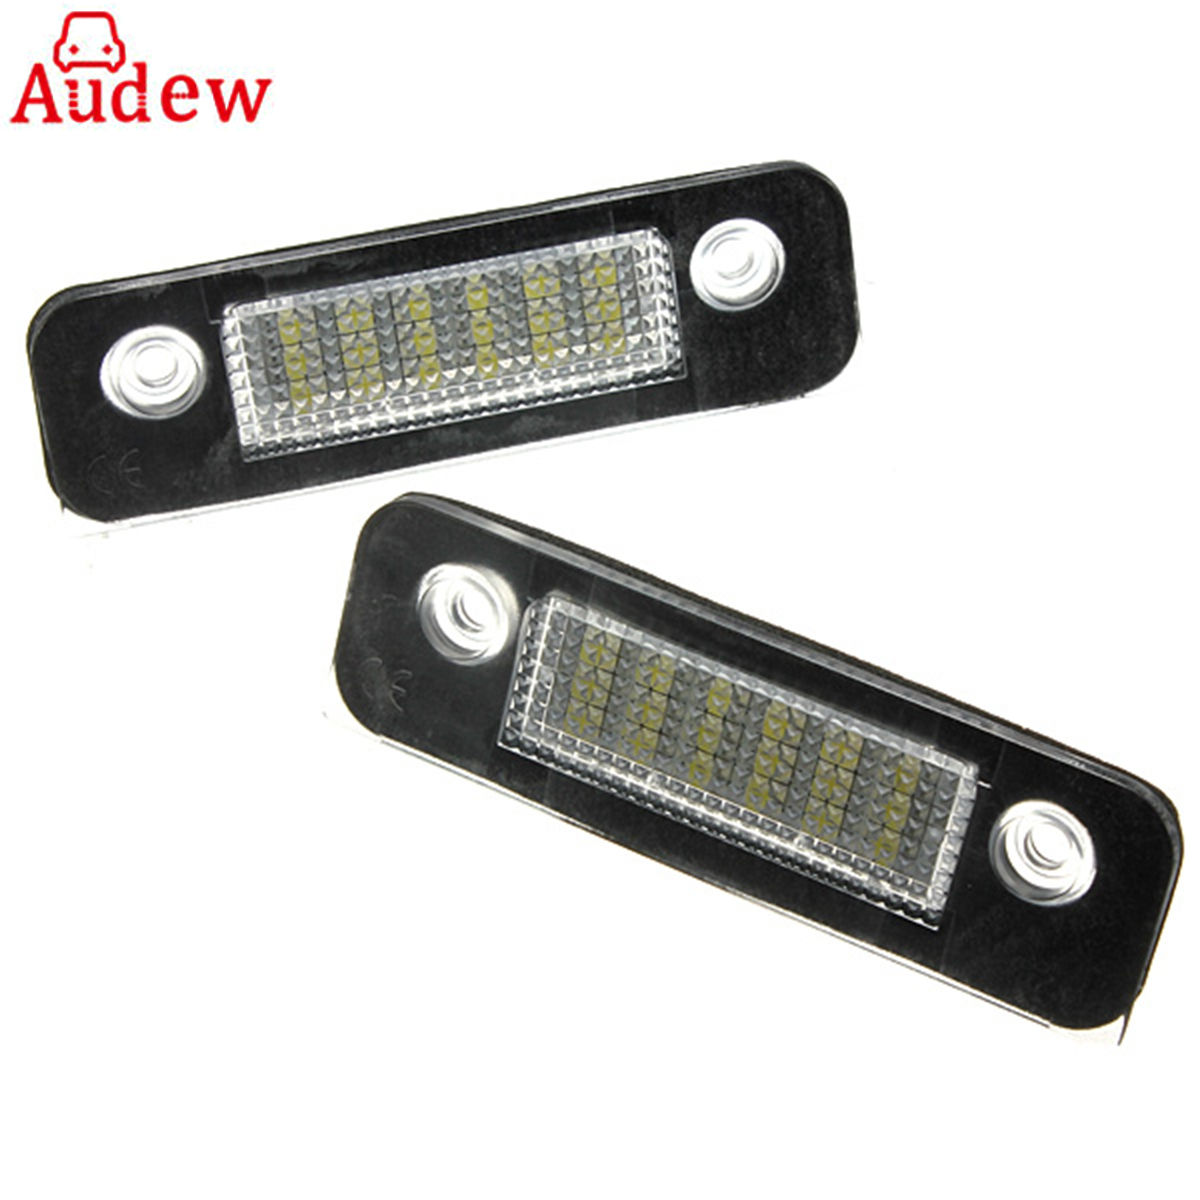 2Pcs For Ford Fusion 12V 18 LED Car License Plate Light White Number Plate Lamps Light SMD for Mondeo/MK2 for Fiesta MK5 hot 2pcs error free 3528 smd 18 led car led license number plate light lamp white for bmw e46 4d sedan 5d wagon 12v